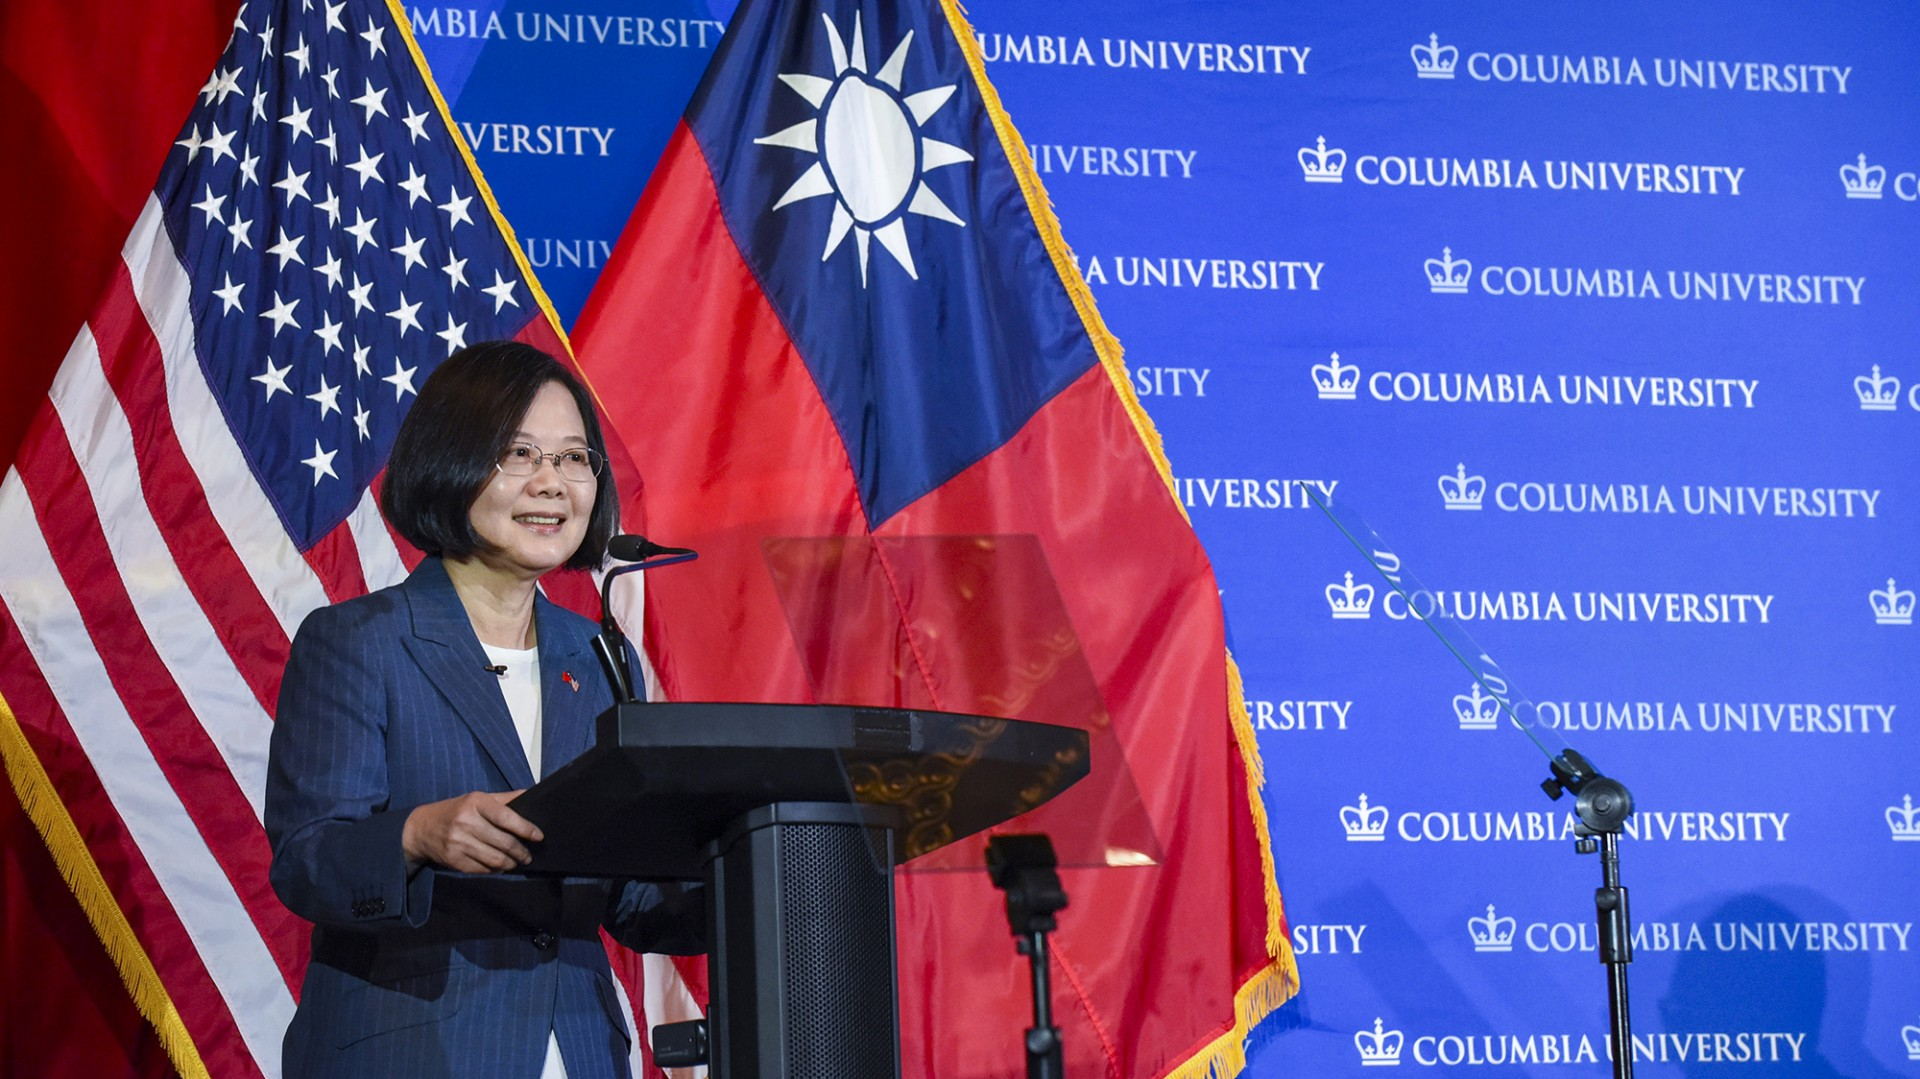 La présidente taïwanaise Tsai Ing-wen à l'Université de Columbia à New York, le 24 juillet 2019. (Source : Defense.info)